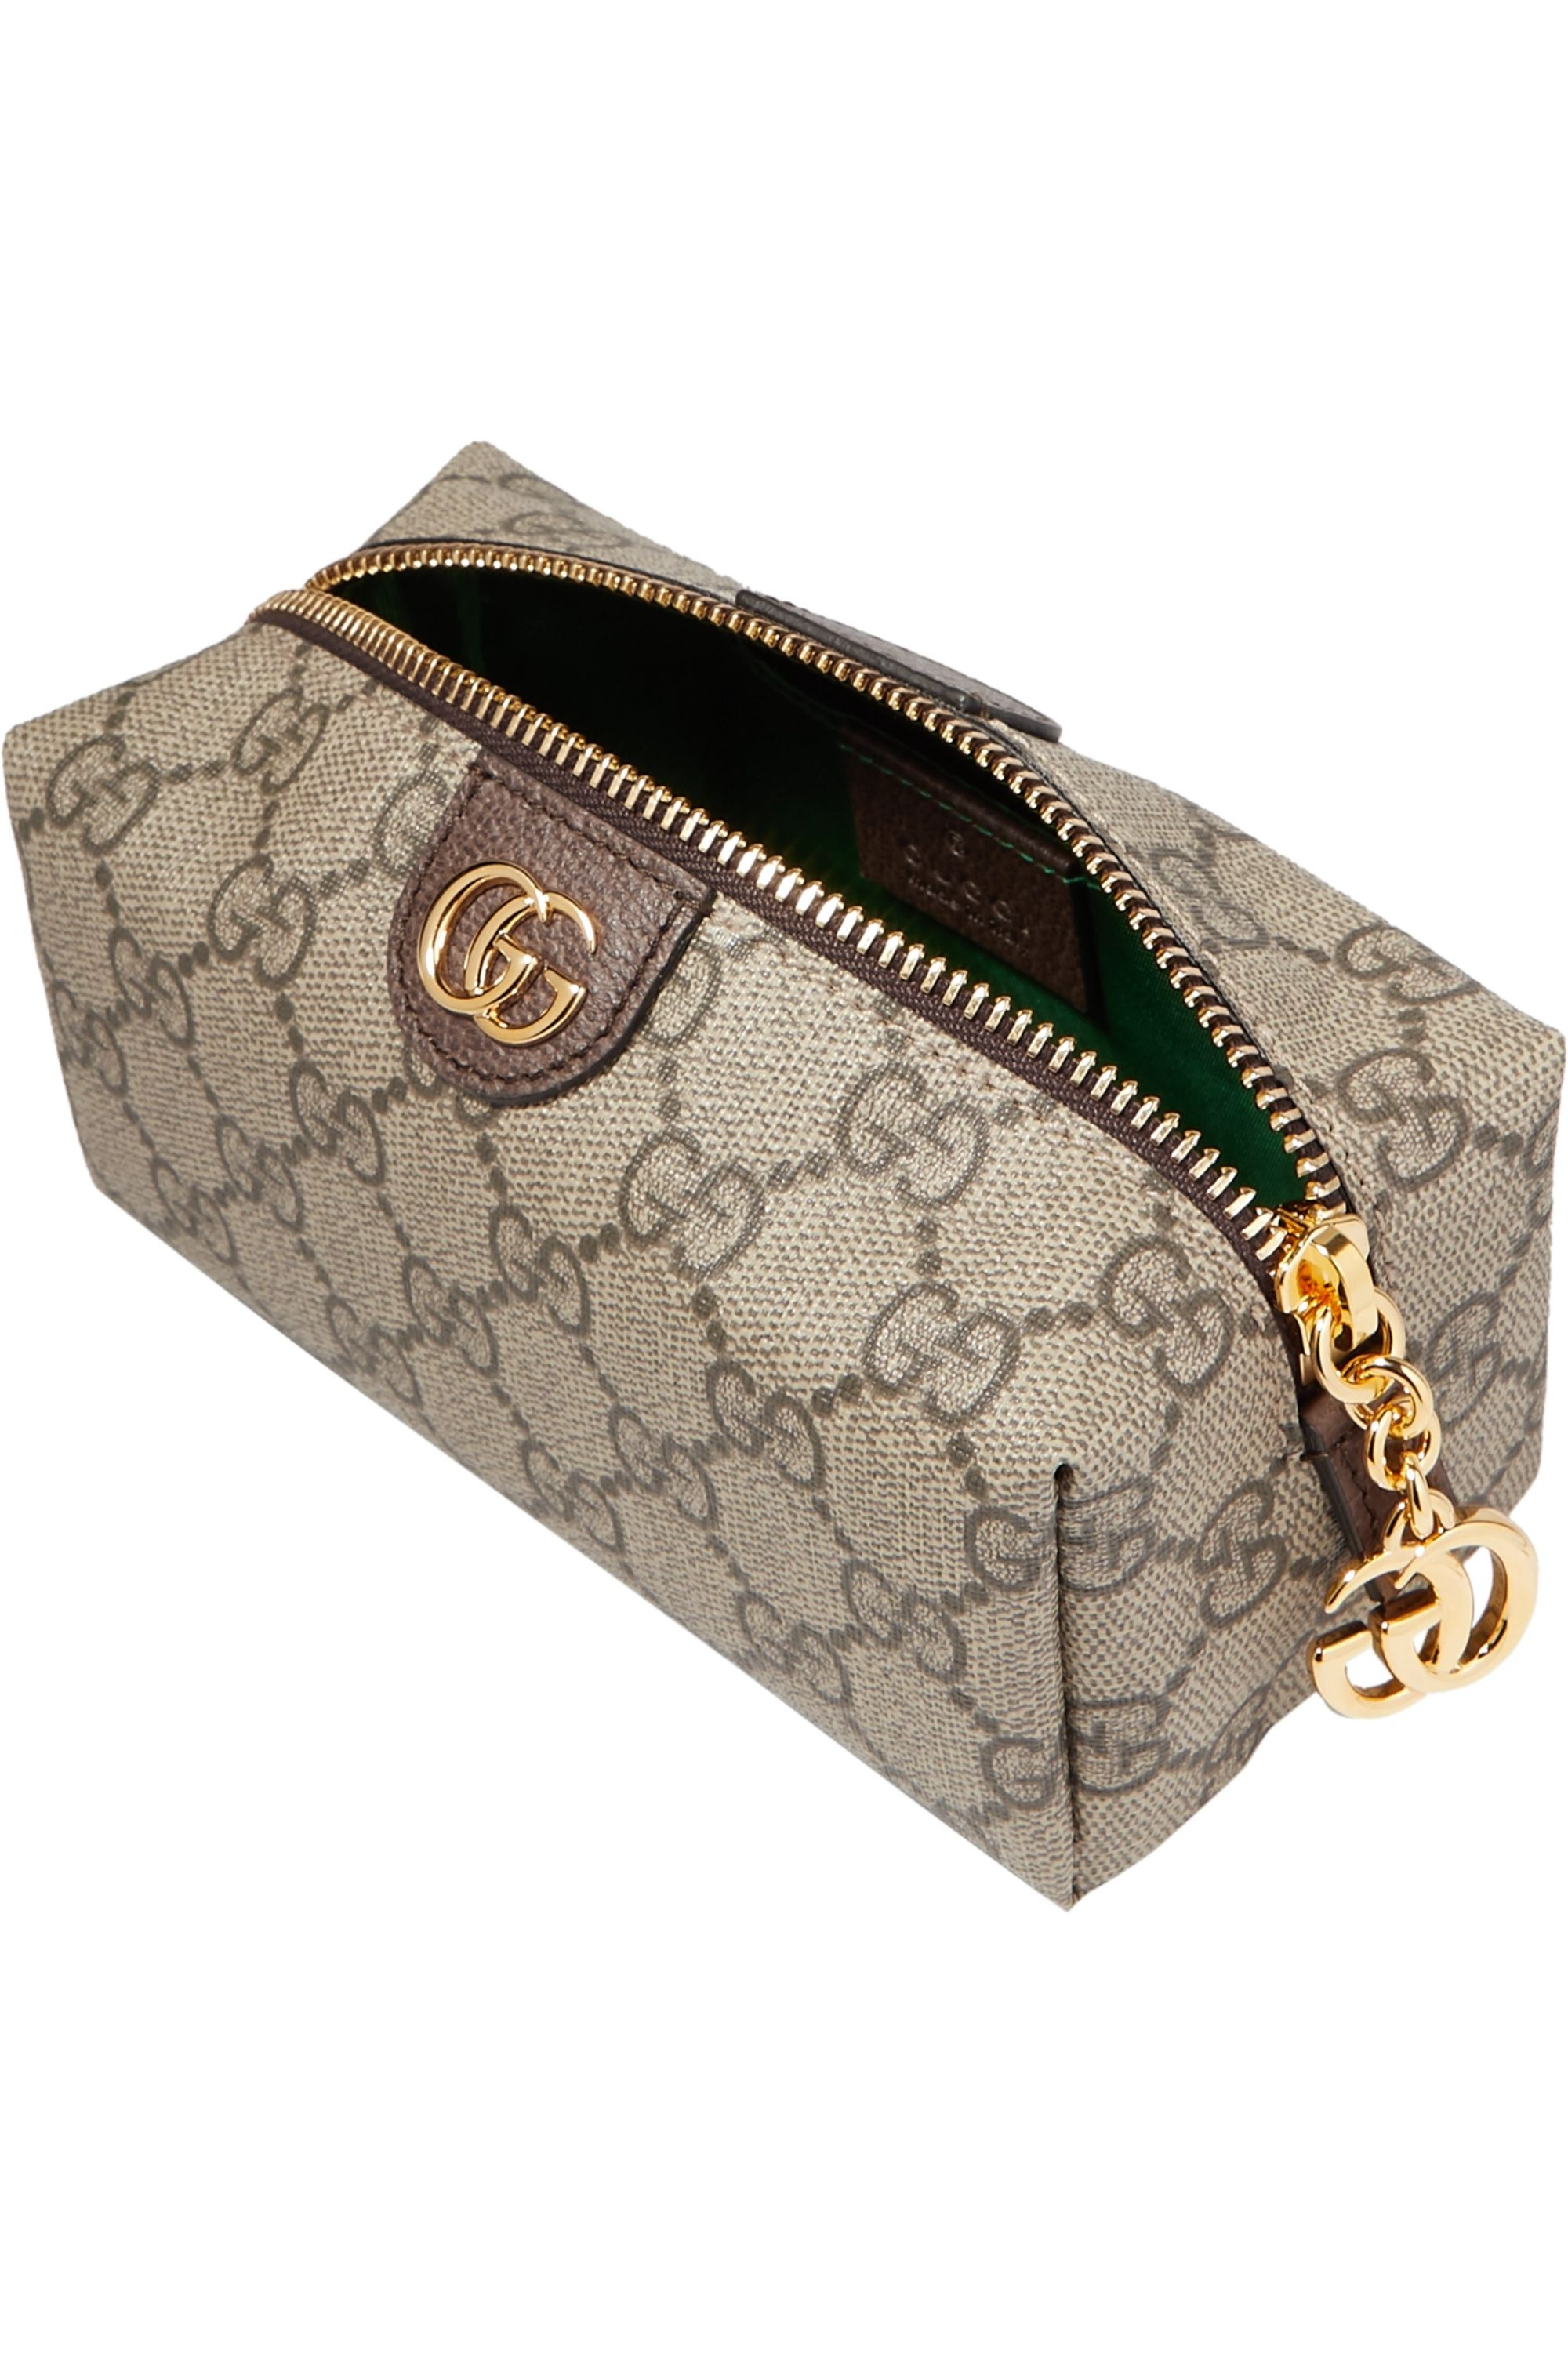 Gucci Ophidia small textured leather-trimmed printed coated-canvas cosmetics case